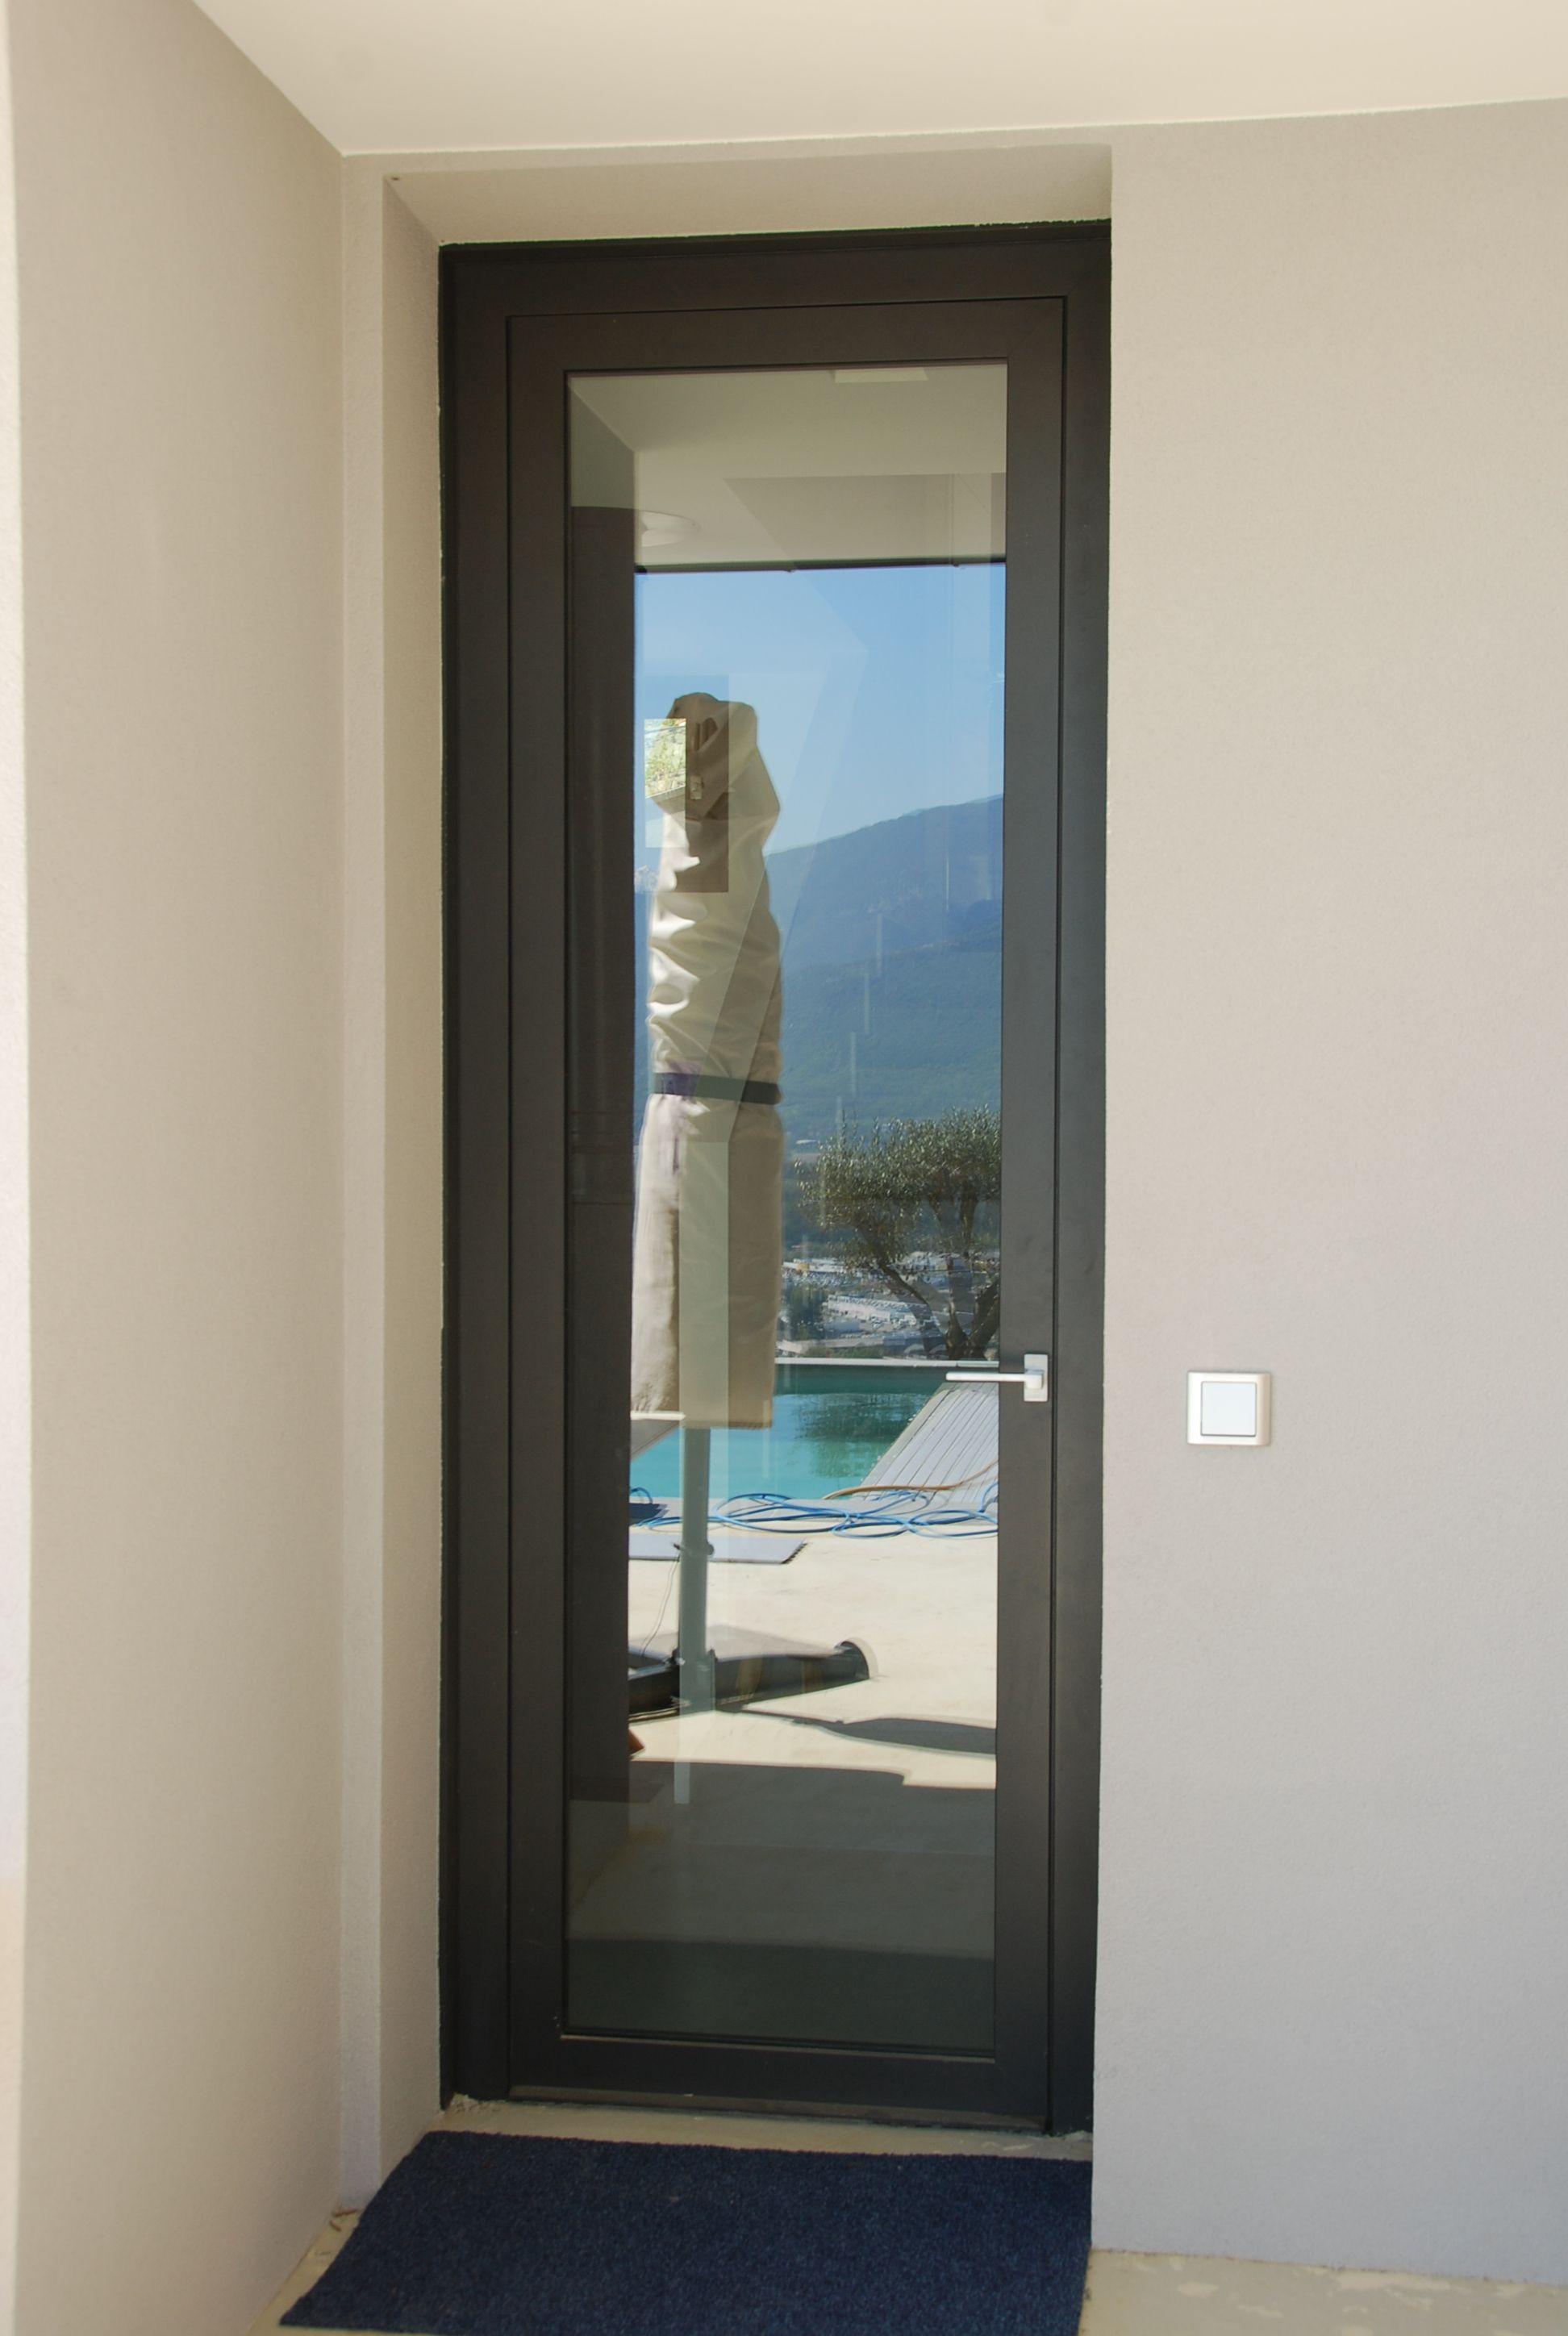 covermetal porte d 39 entr e vitr e main door pinterest